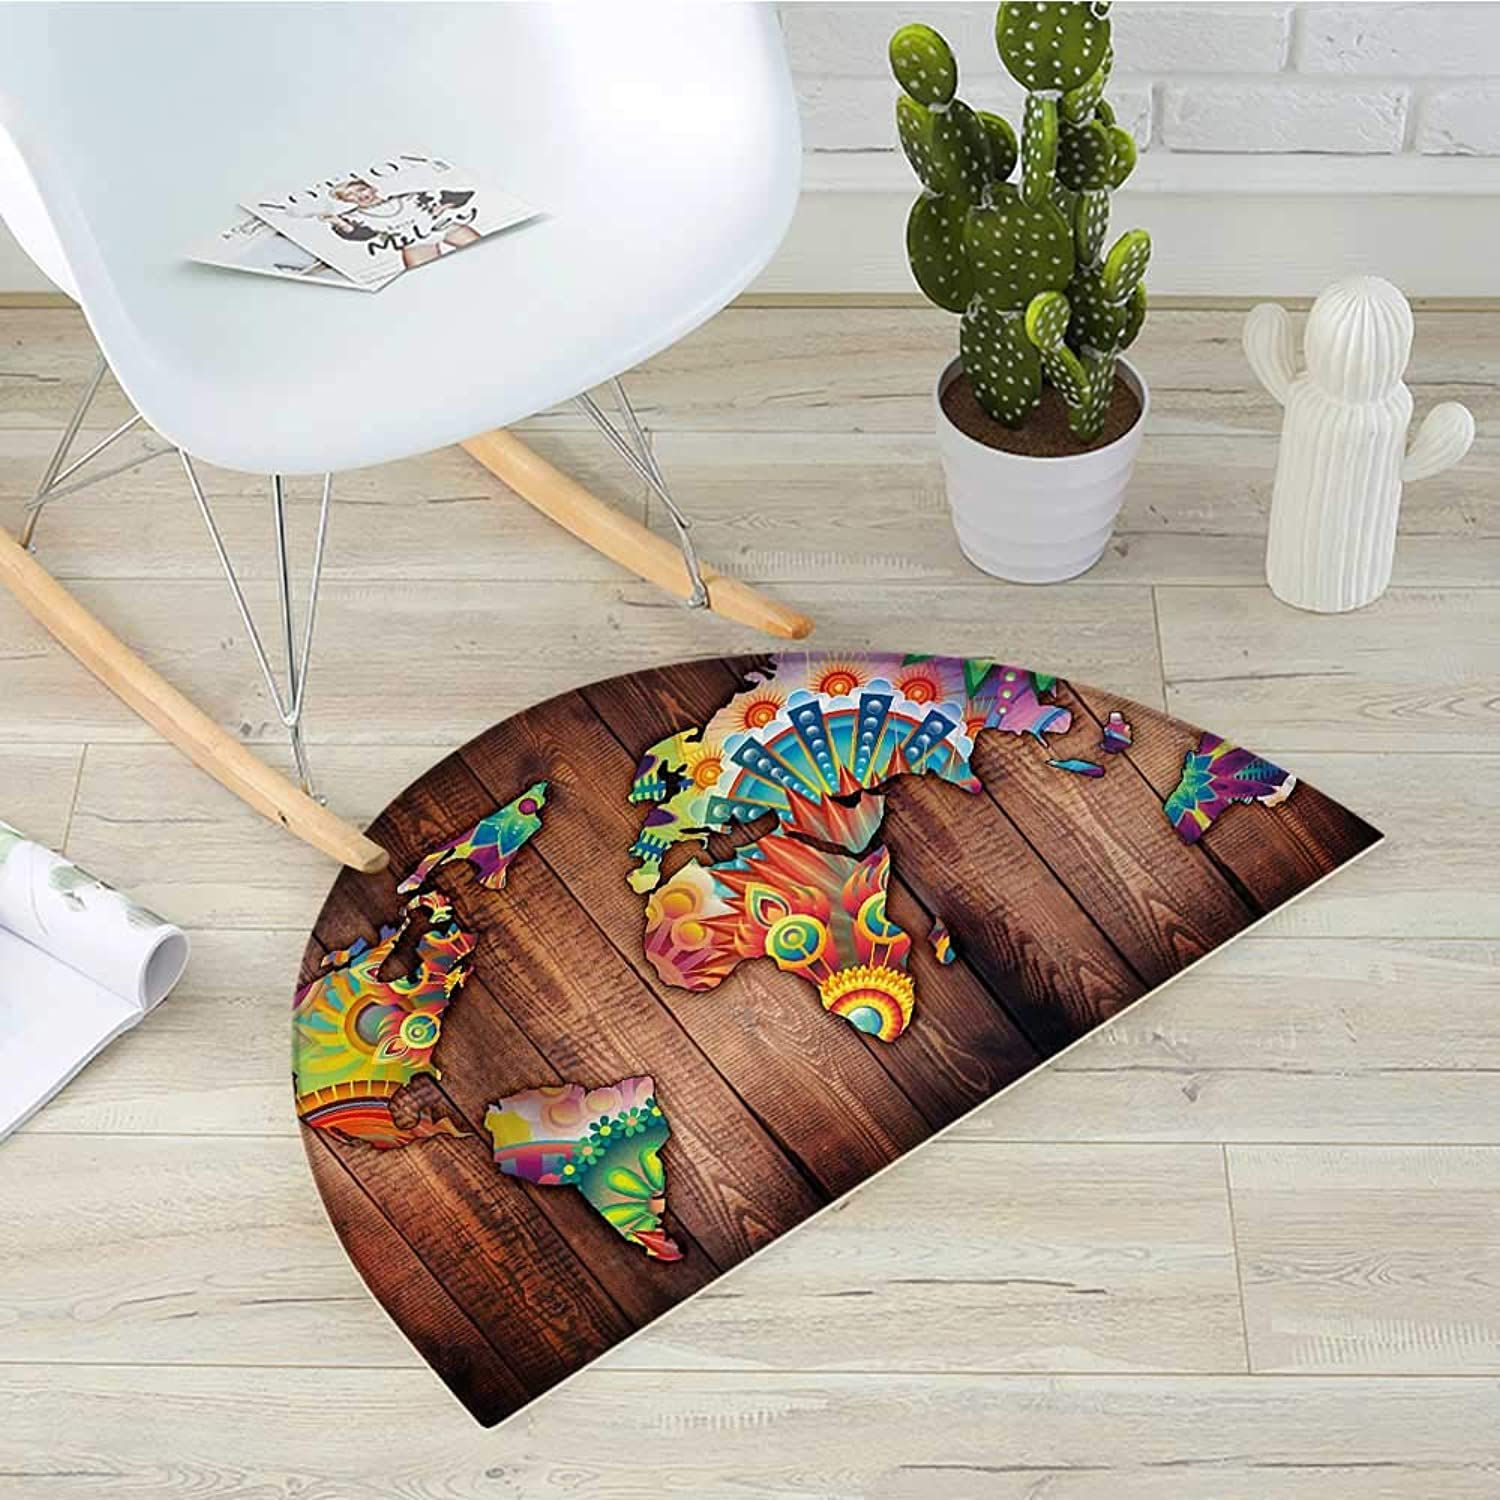 Floral World Map Semicircular CushionWorld Map on Wooden Rustic Planks Abstract Countries in Vibrant colors Entry Door Mat H 39.3  xD 59  Multicolor